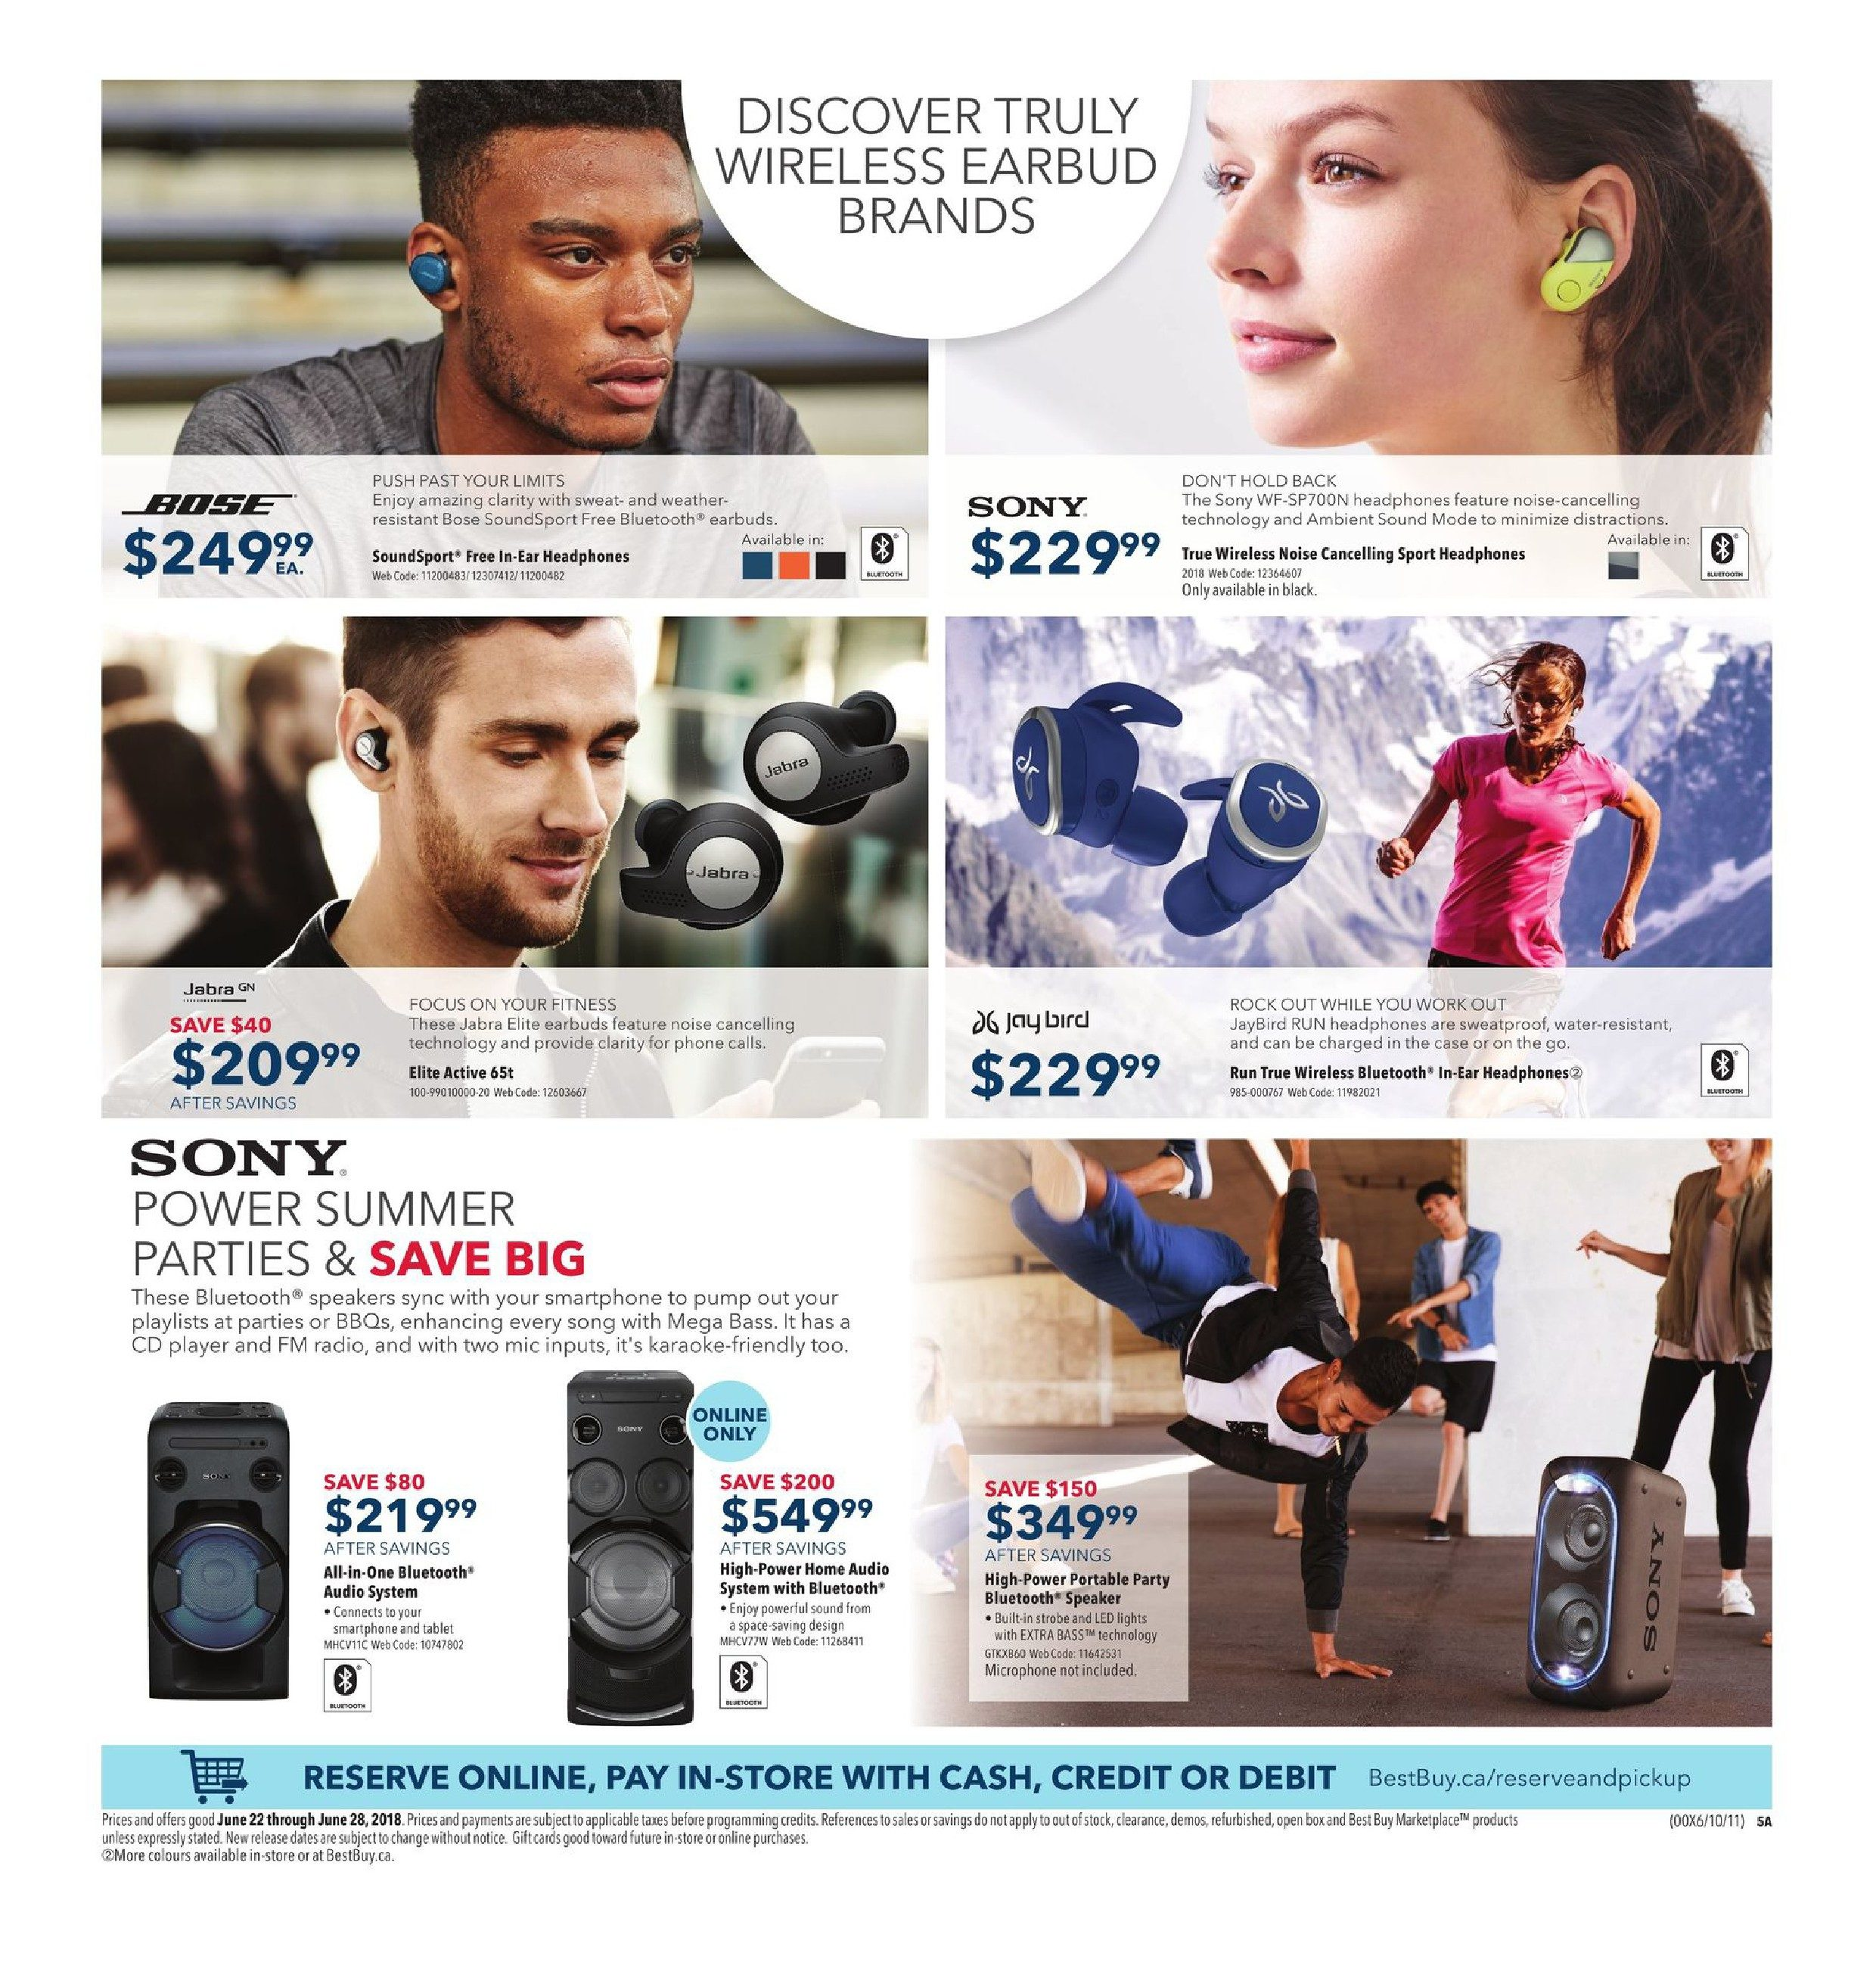 Best buy weekly flyer weekly dont miss these hot deals jun 22 best buy weekly flyer weekly dont miss these hot deals jun 22 28 redflagdeals fandeluxe Image collections